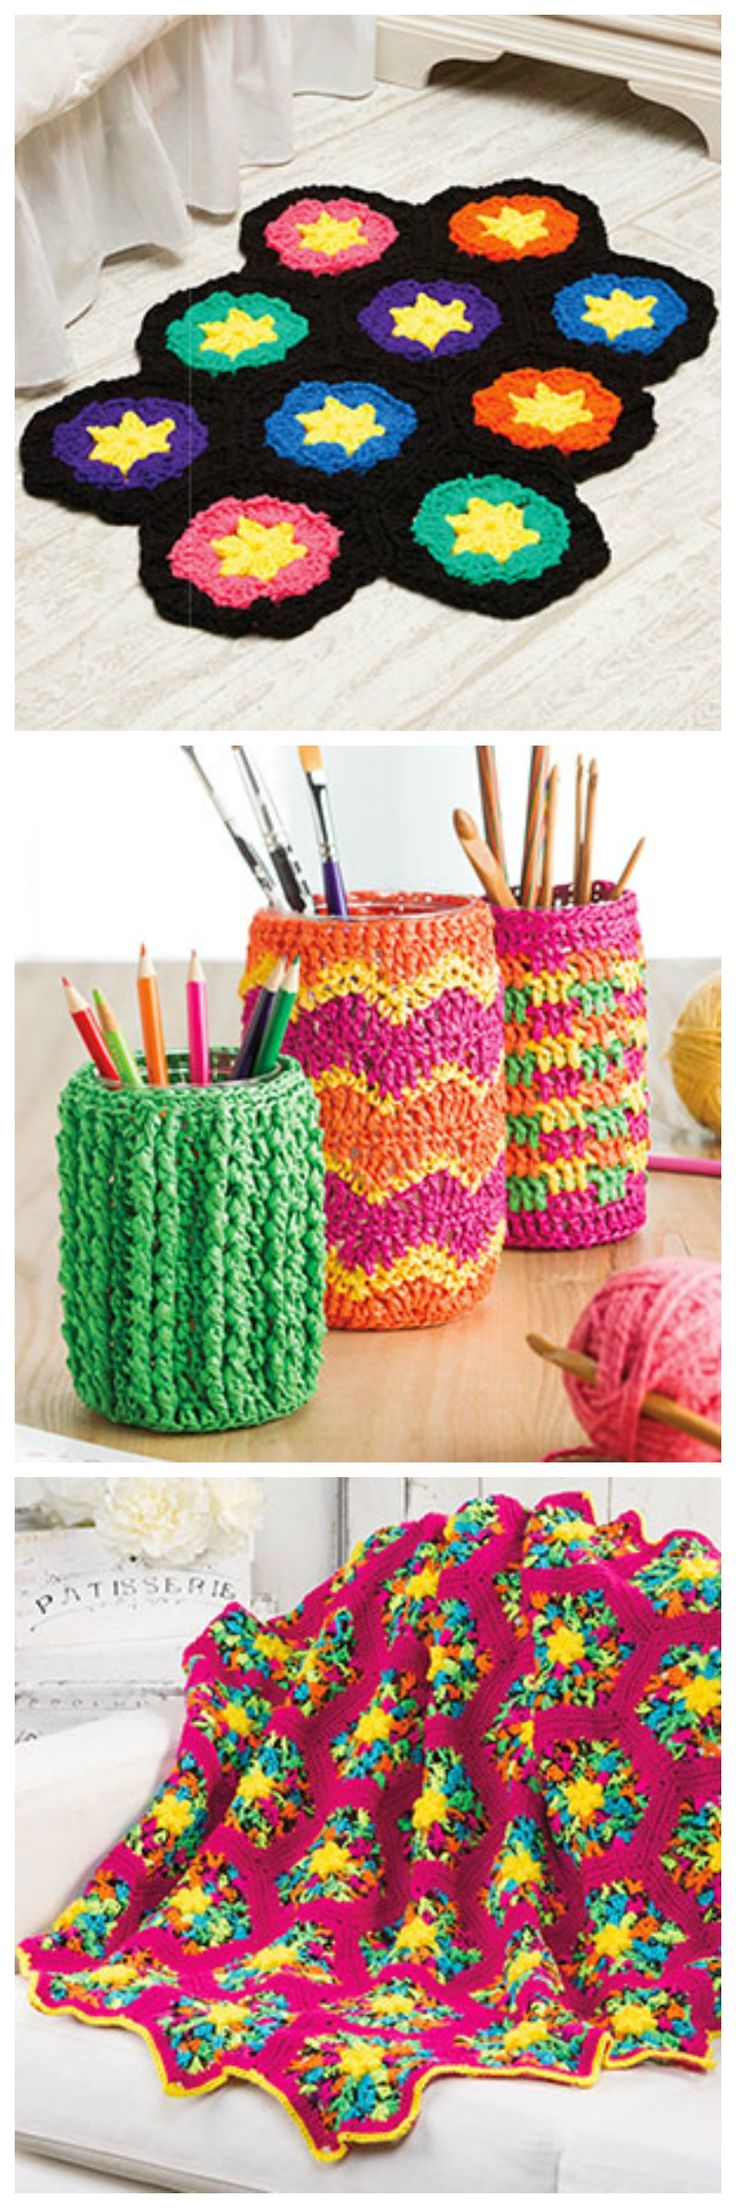 From the August 2016 issue of Crochet World Magazine. Order a digital copy here: https://www.anniescatalog.com/detail.html?prod_id=132144.